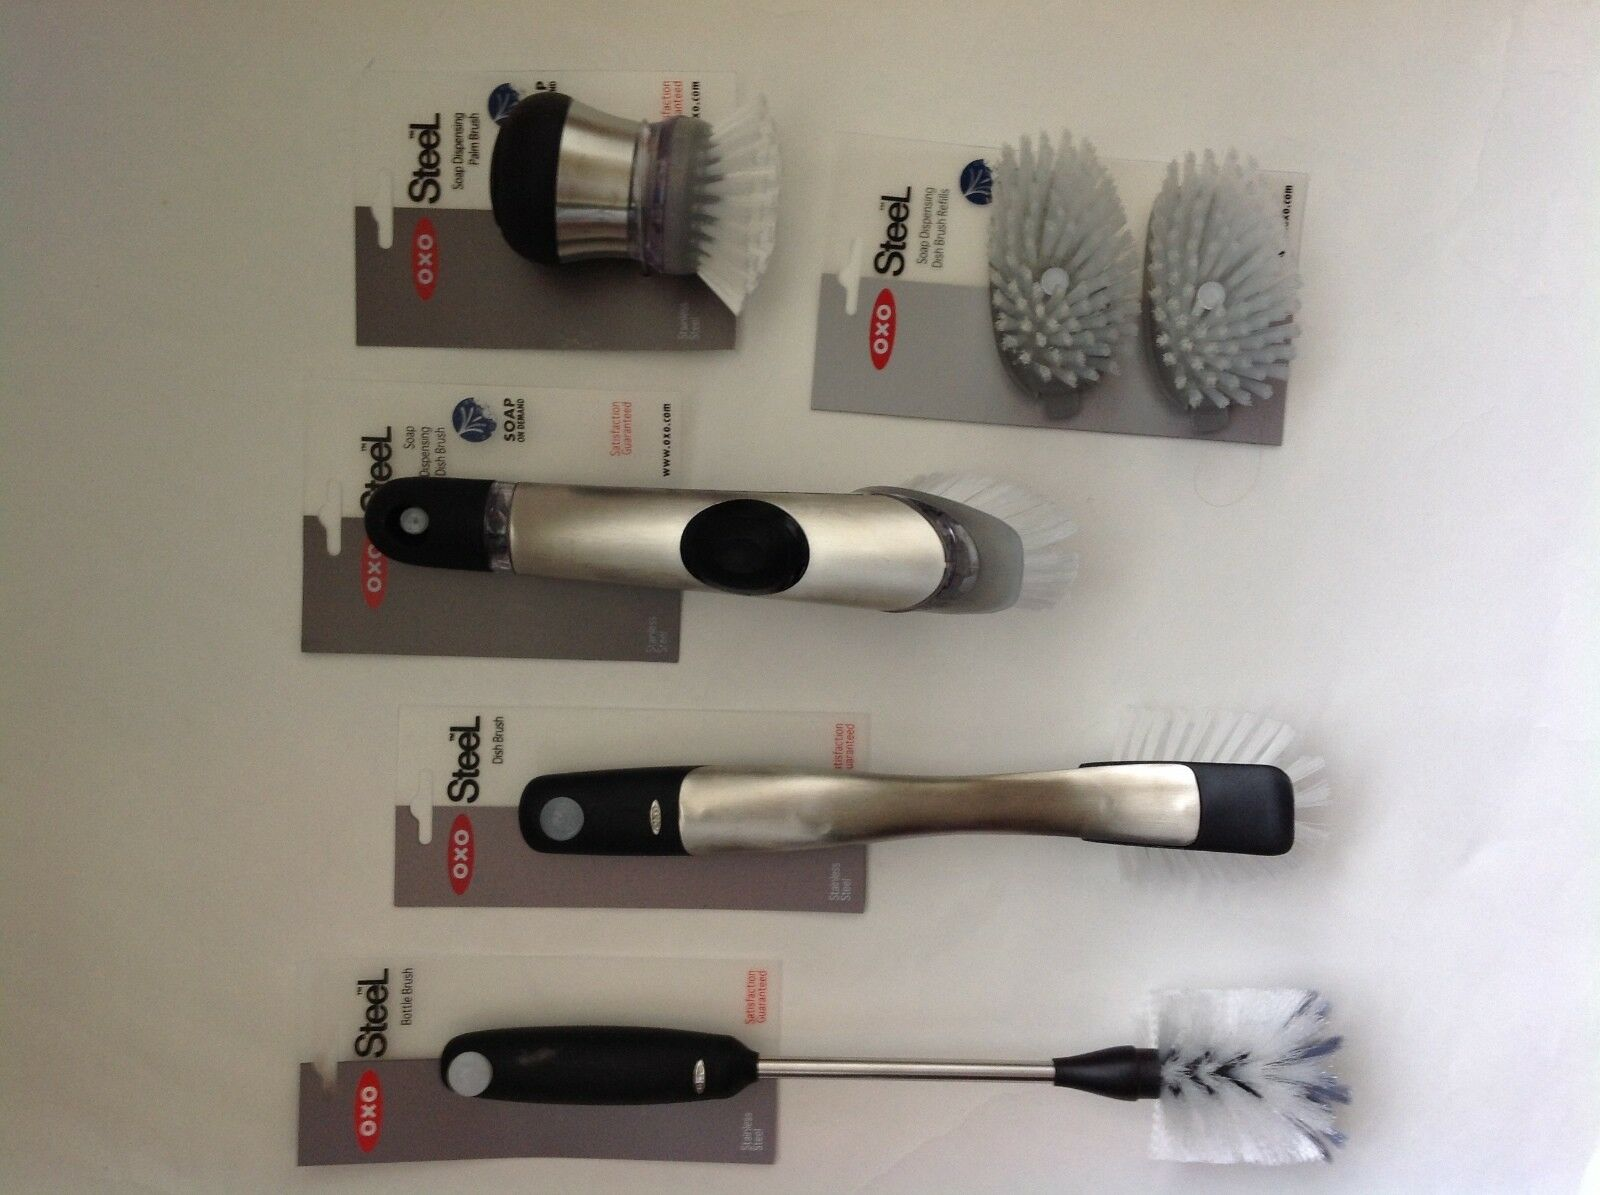 New OXO Good Grips Steel 5 Bottle, Palm and Dish Brushes With Refills